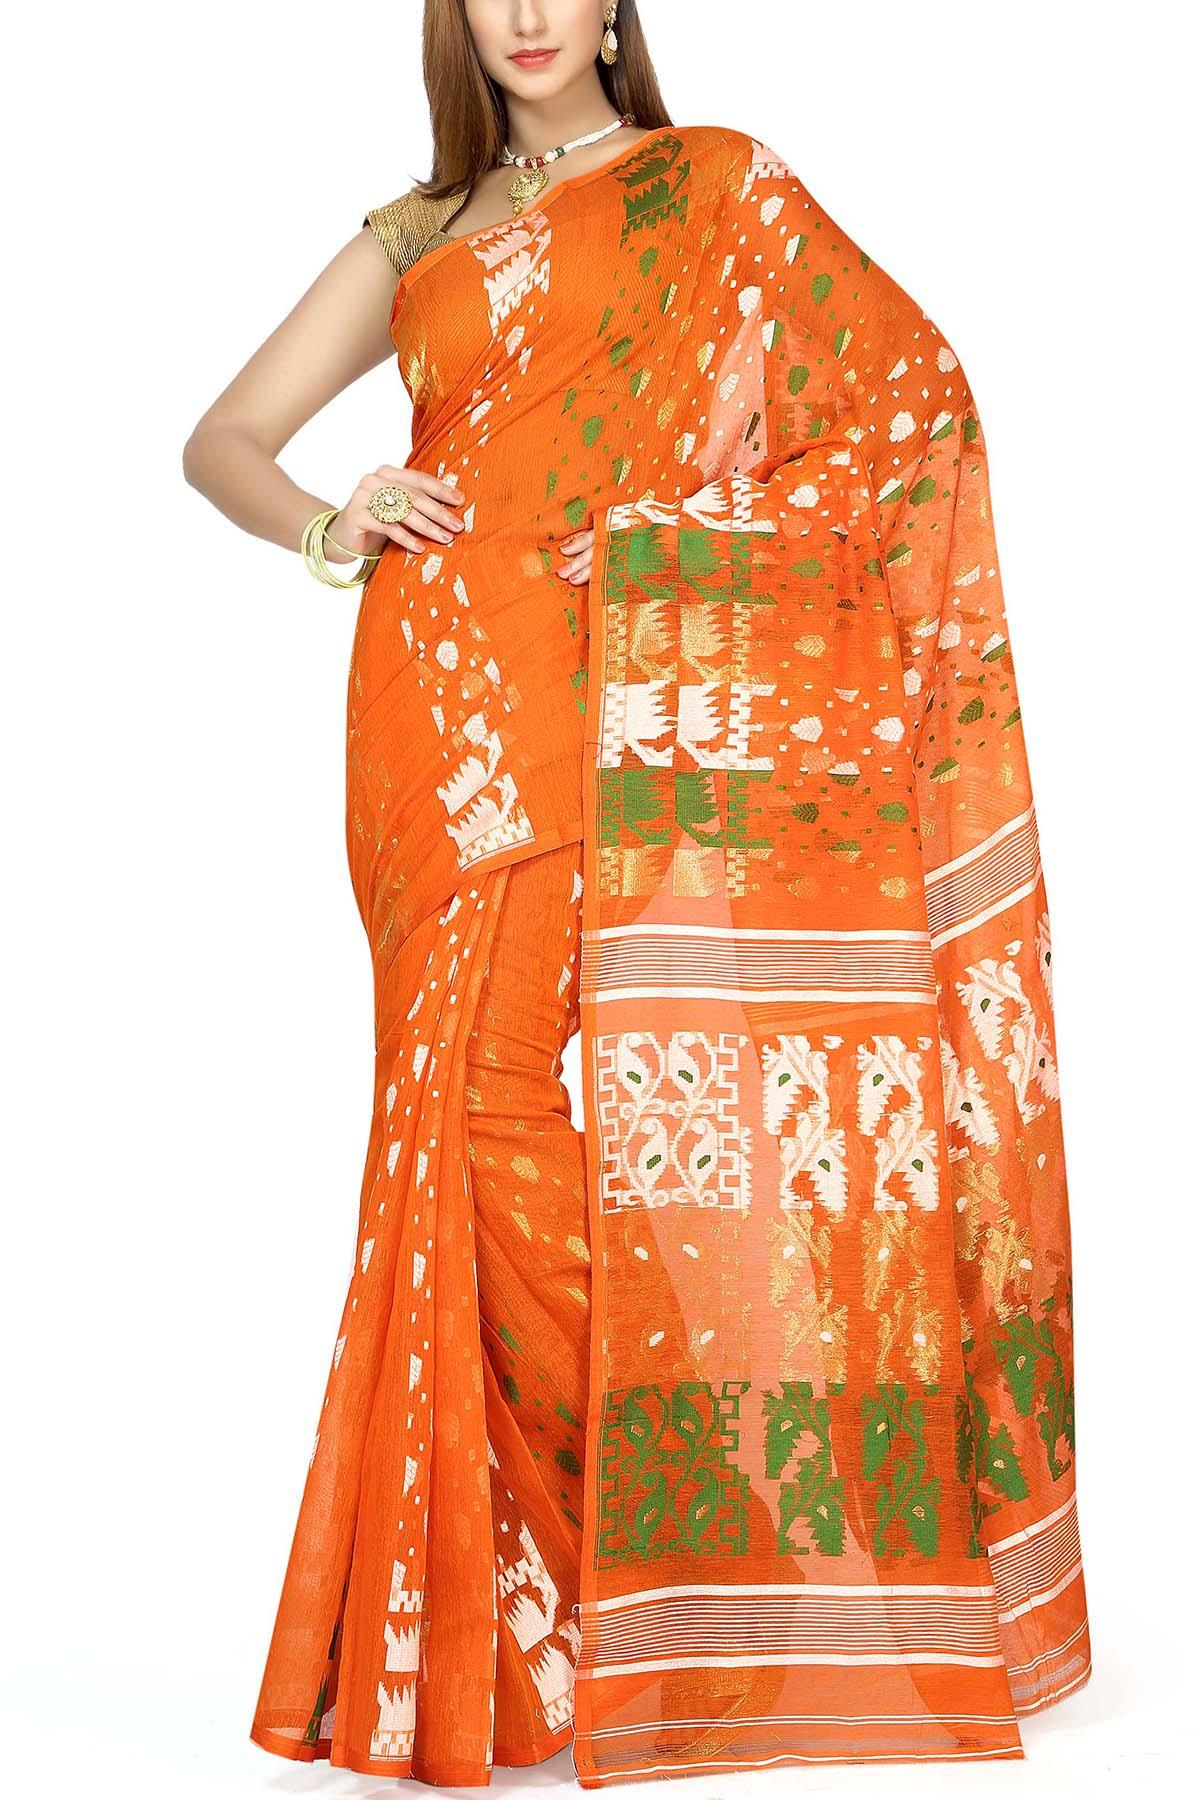 5b2d40f962a6a Giants Orange   Tri-color Dhakai Cotton Jamdani Saree - Muslin Myths ...